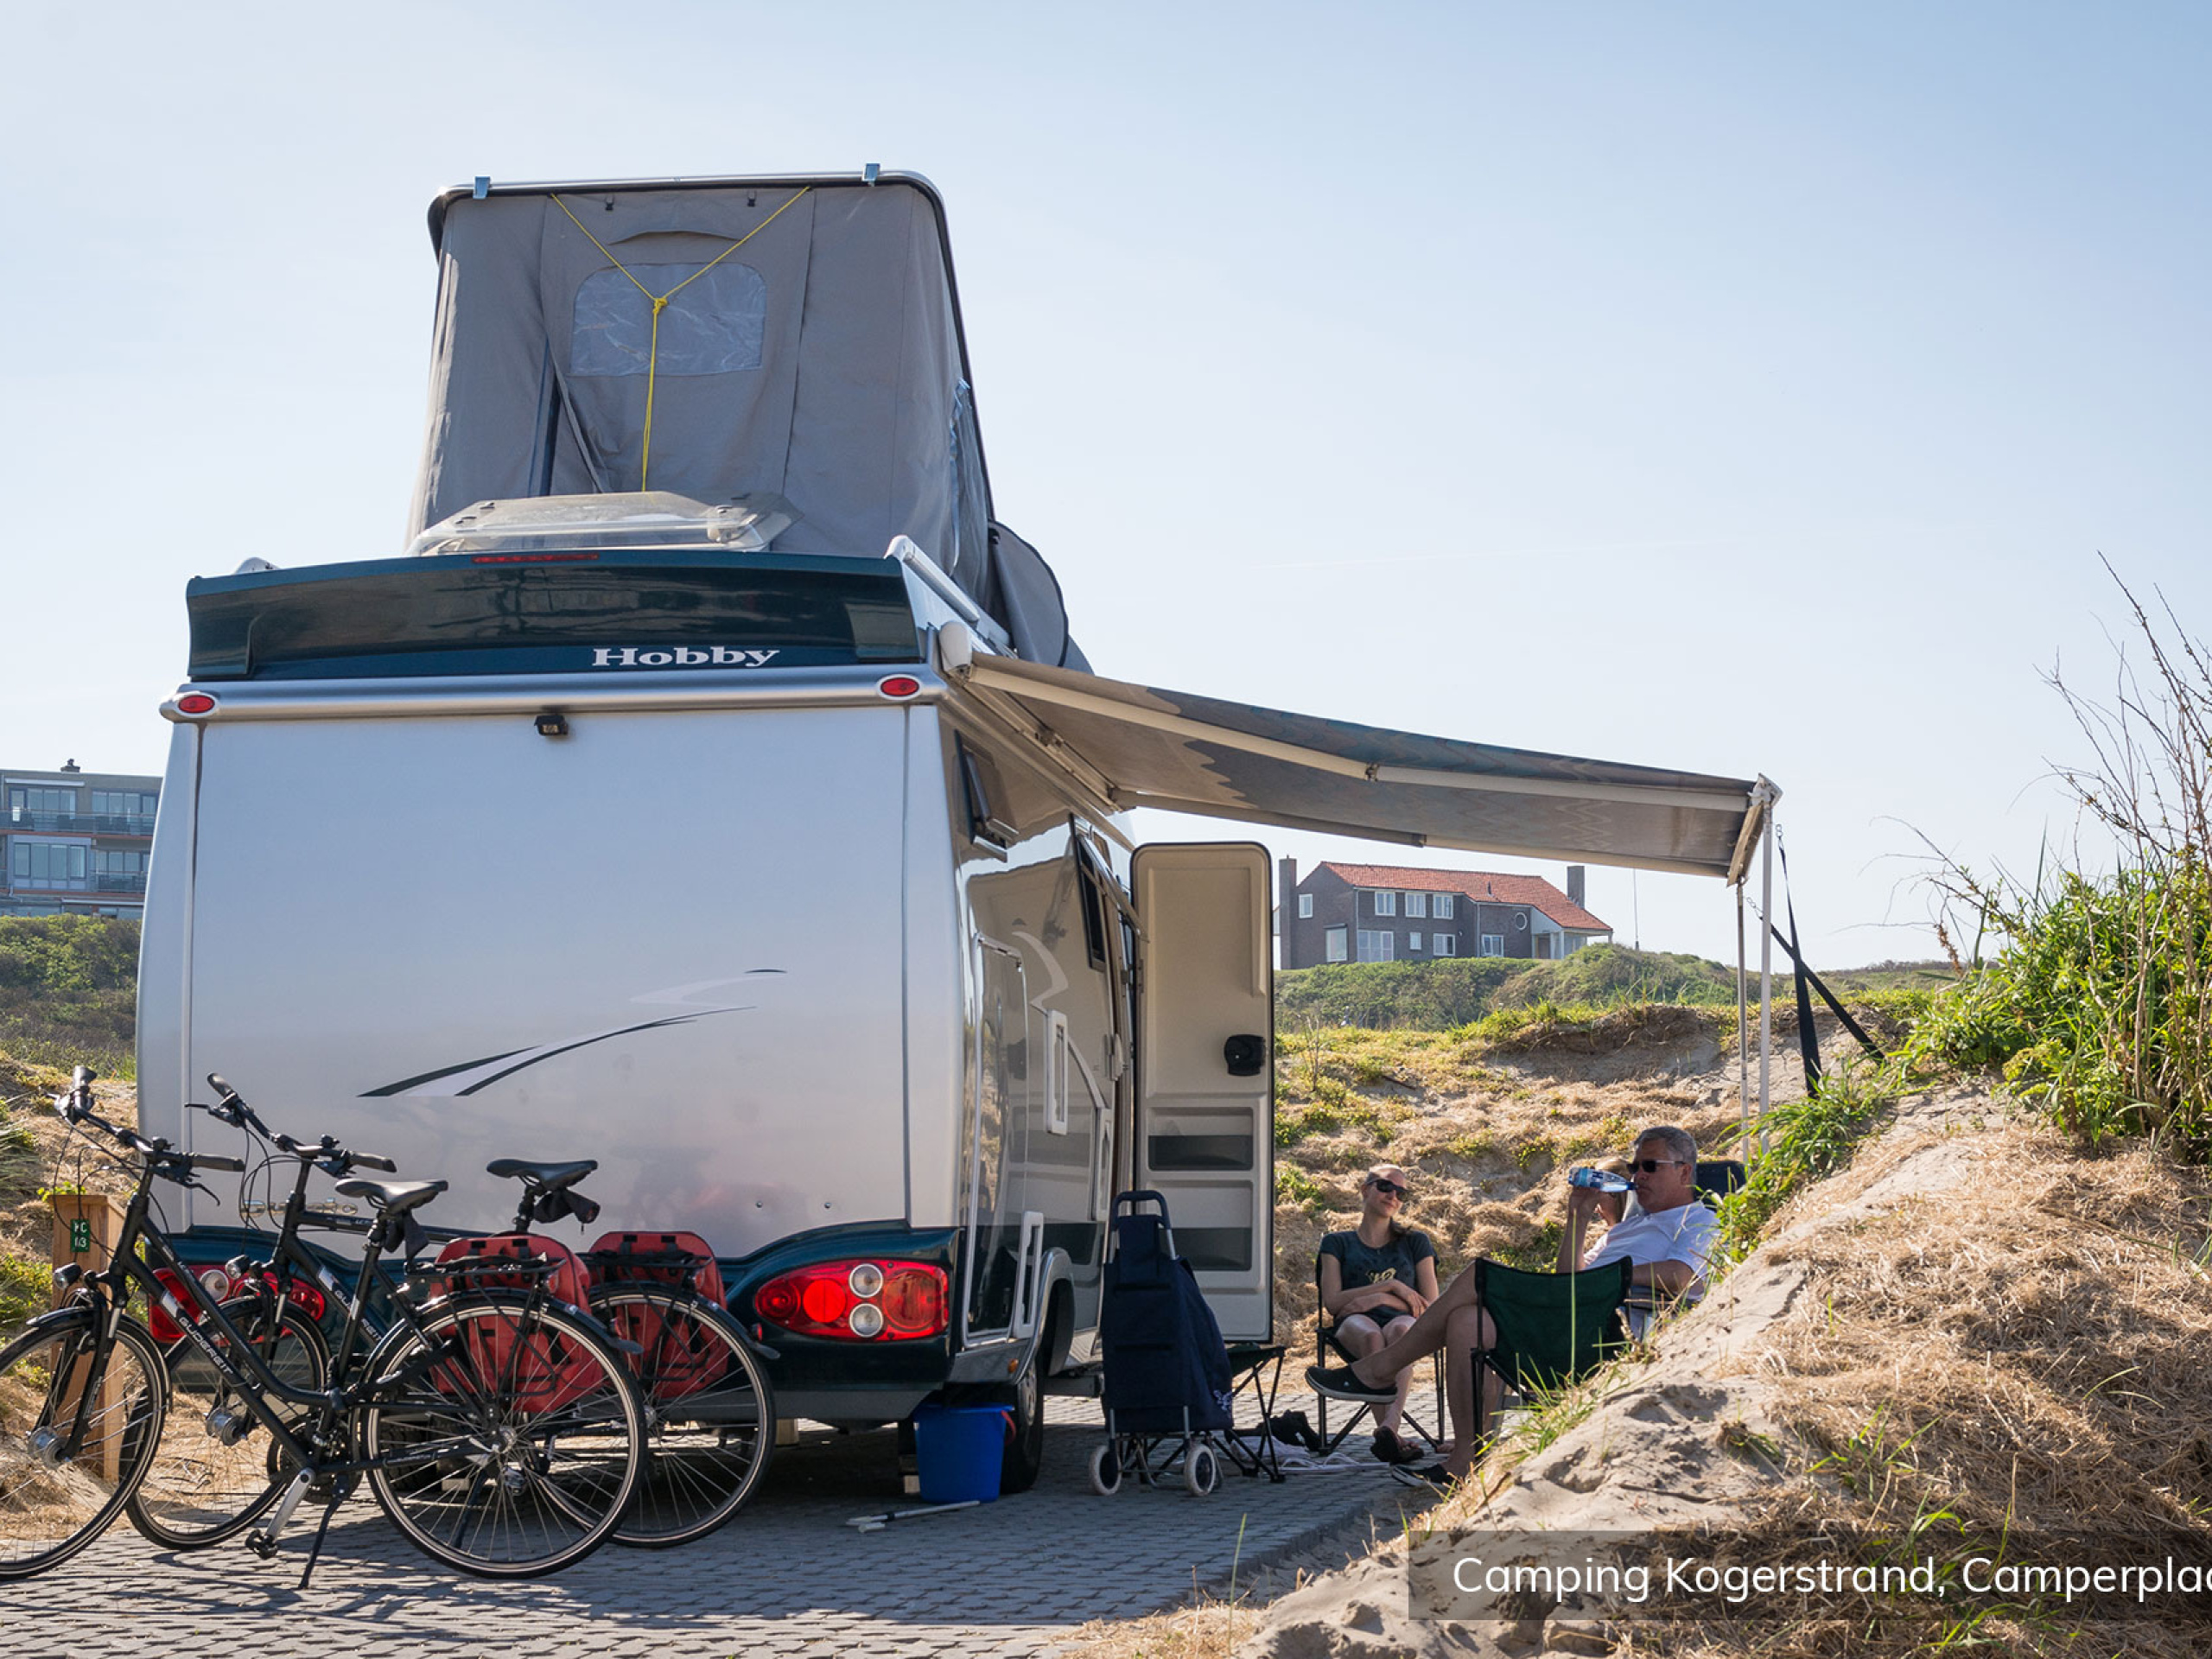 Relax and camp in the dunes nearby the beach in De Koog